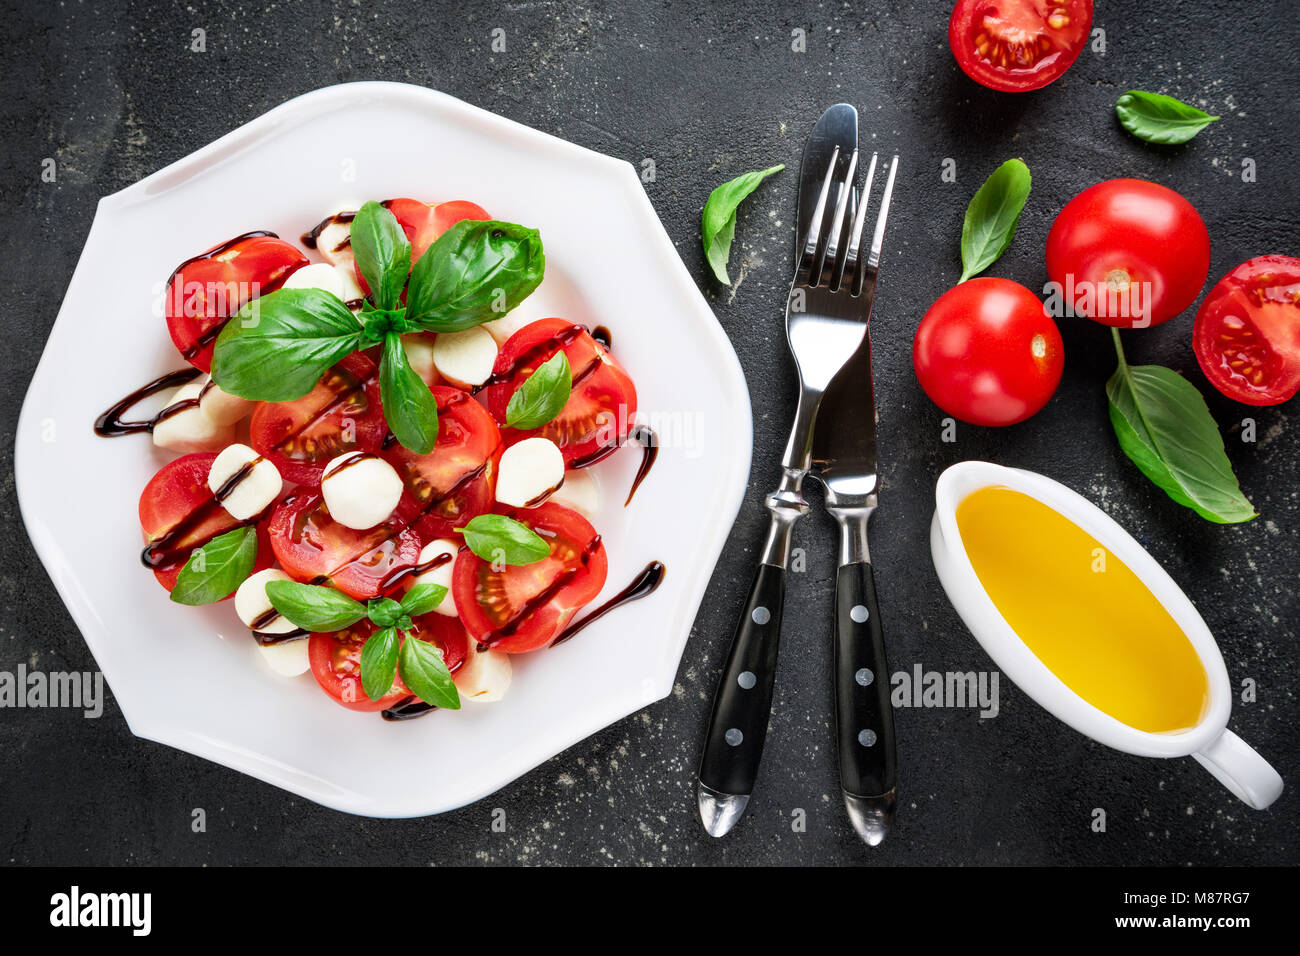 Caprese salad. Tomatoes, mozzarella cheese, tomatoes, olive oil, basil herb leaves, balsamic sauce on dark background. - Stock Image